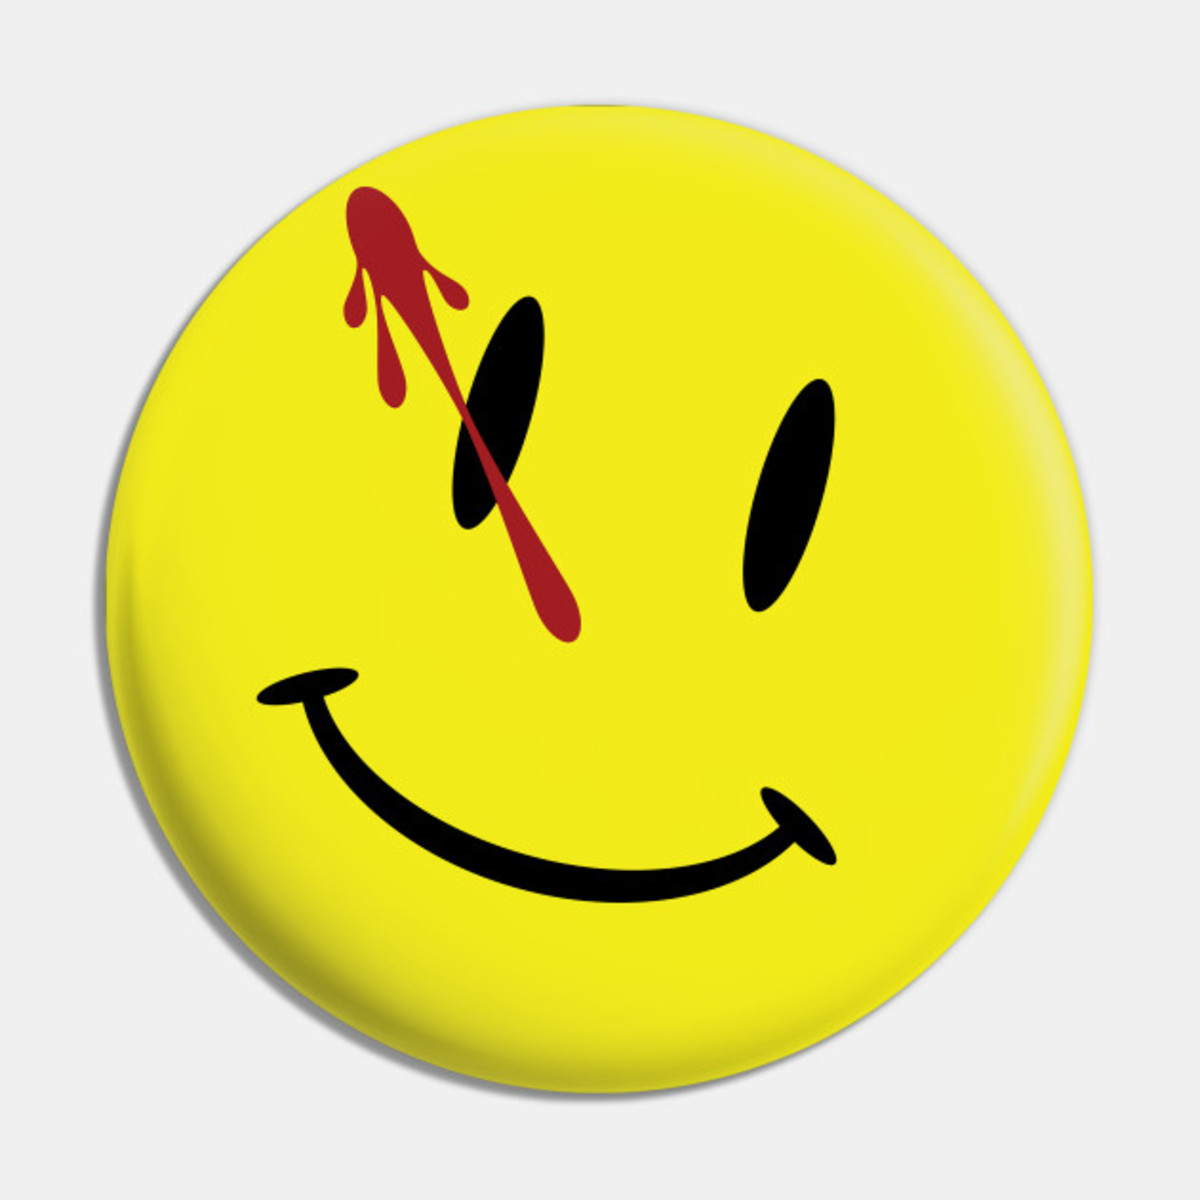 A Review of HBO's Watchmen